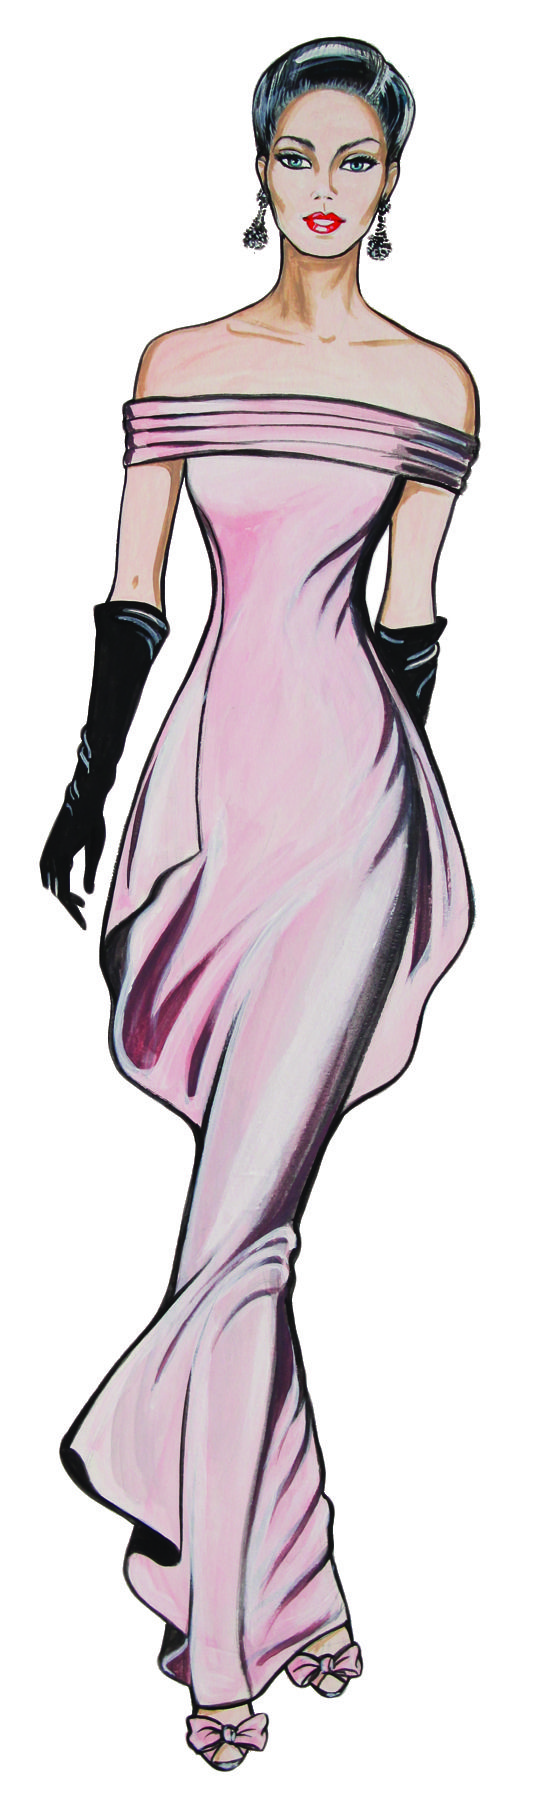 Tops fashion design sketches flat fashion sketch top 045 - Timeless Fashion Illustrator Mary Mitchell Her Work Illustrating Three Decades Of Style Now Subject Of New Book And Exhibition Drawing